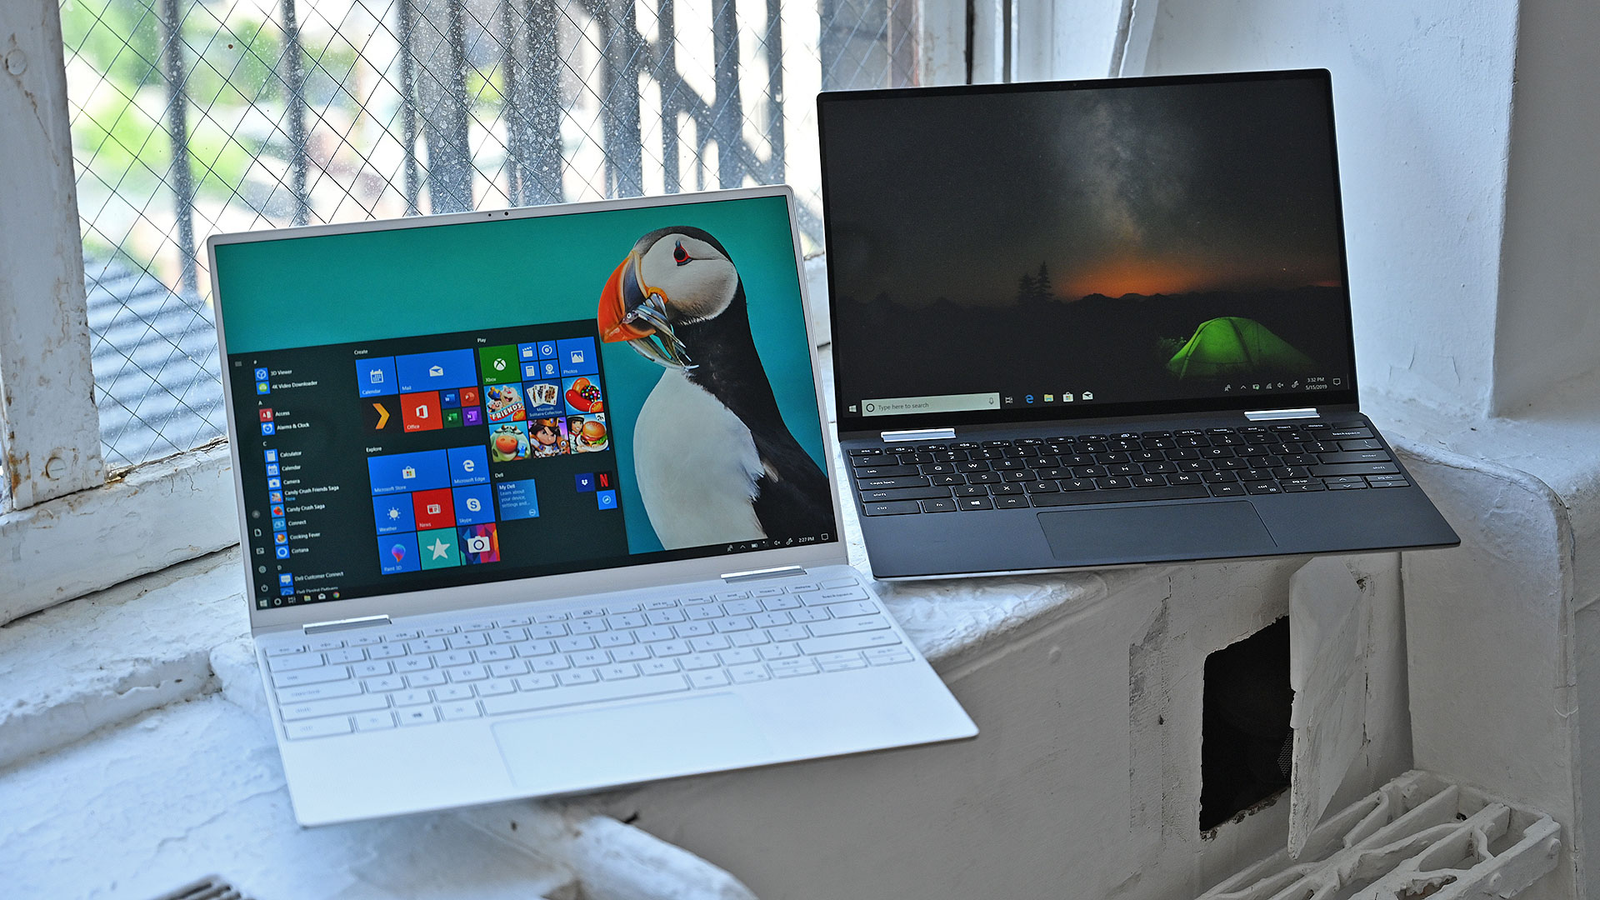 Illustration for article titled The New XPS 13 2-in-1 Comes Tantalizingly Close to Overshadowing the Original